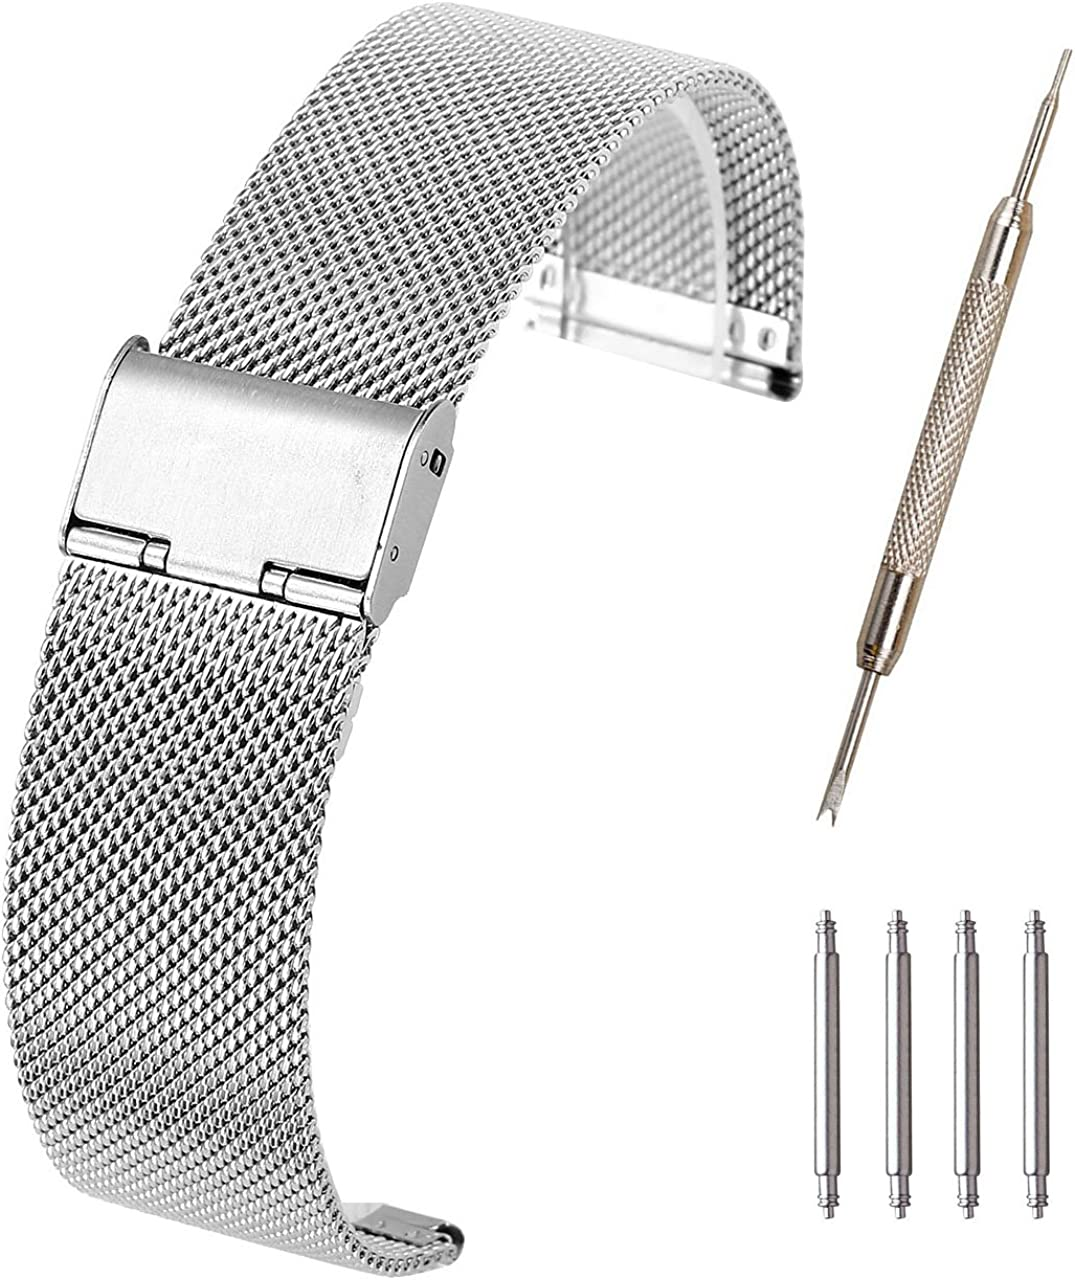 Top Plaza 18/20/22mm Stainless Steel Bracelet Wrist Watch Band Replacement Mesh Metal Strap Interlock Safety Clasp